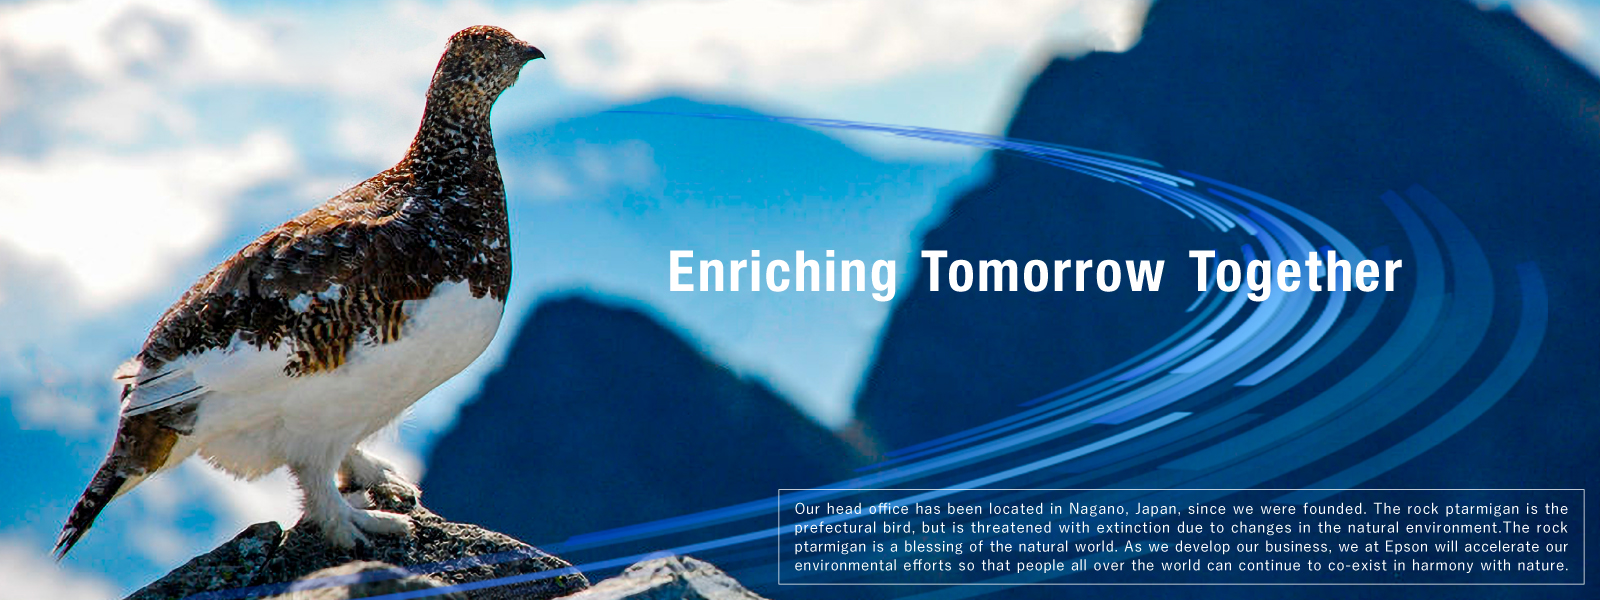 Enriching Tomorrow Together